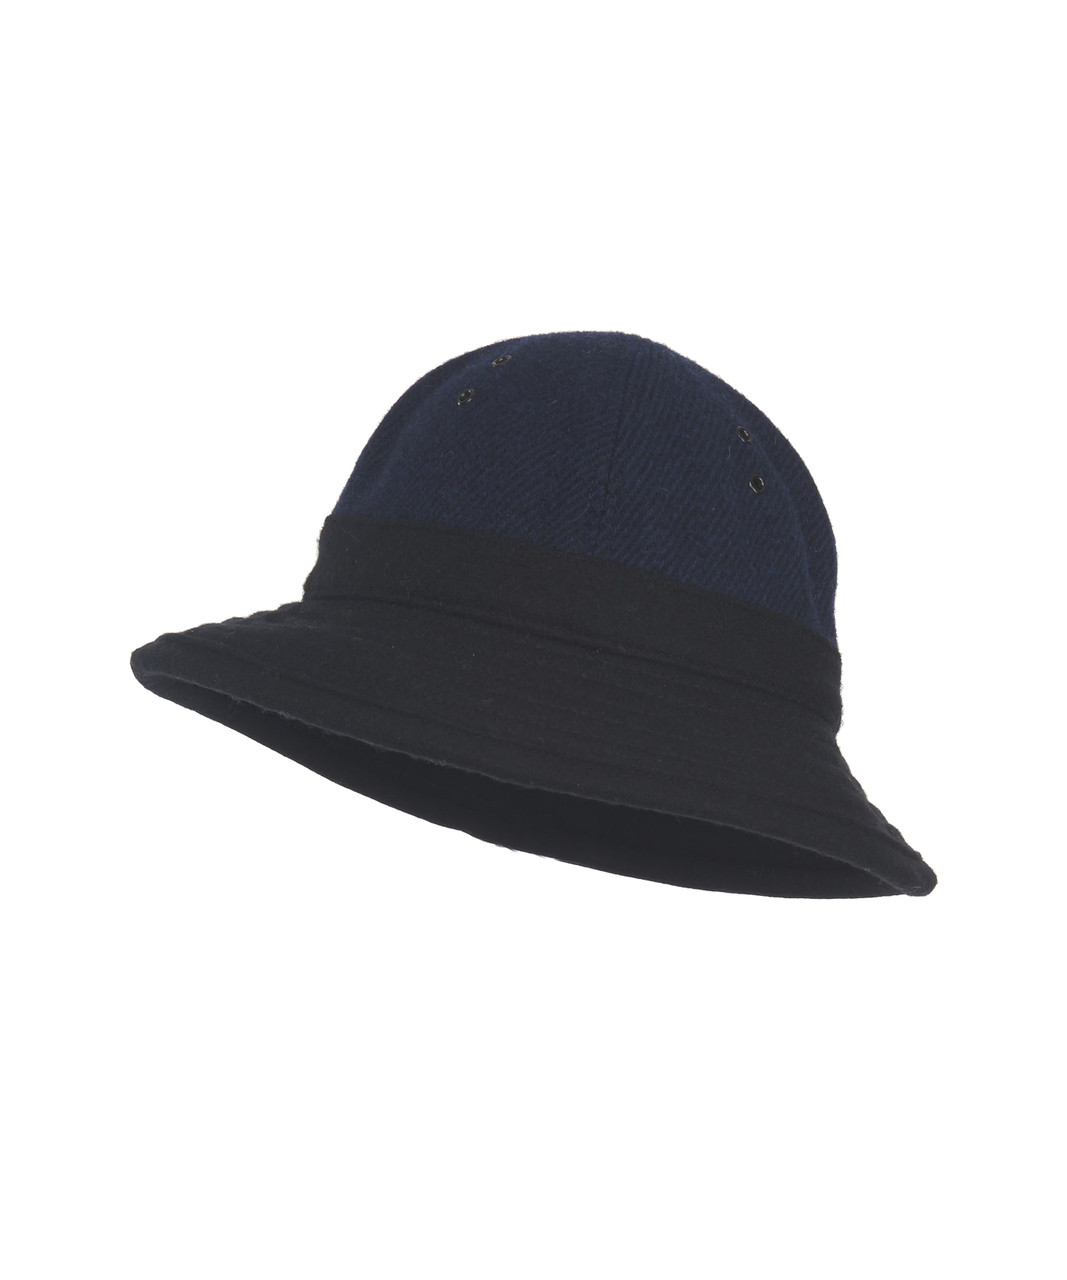 31a9bd11d17aa ... czech wool bucket hat made in the usa 41d1b 70d48